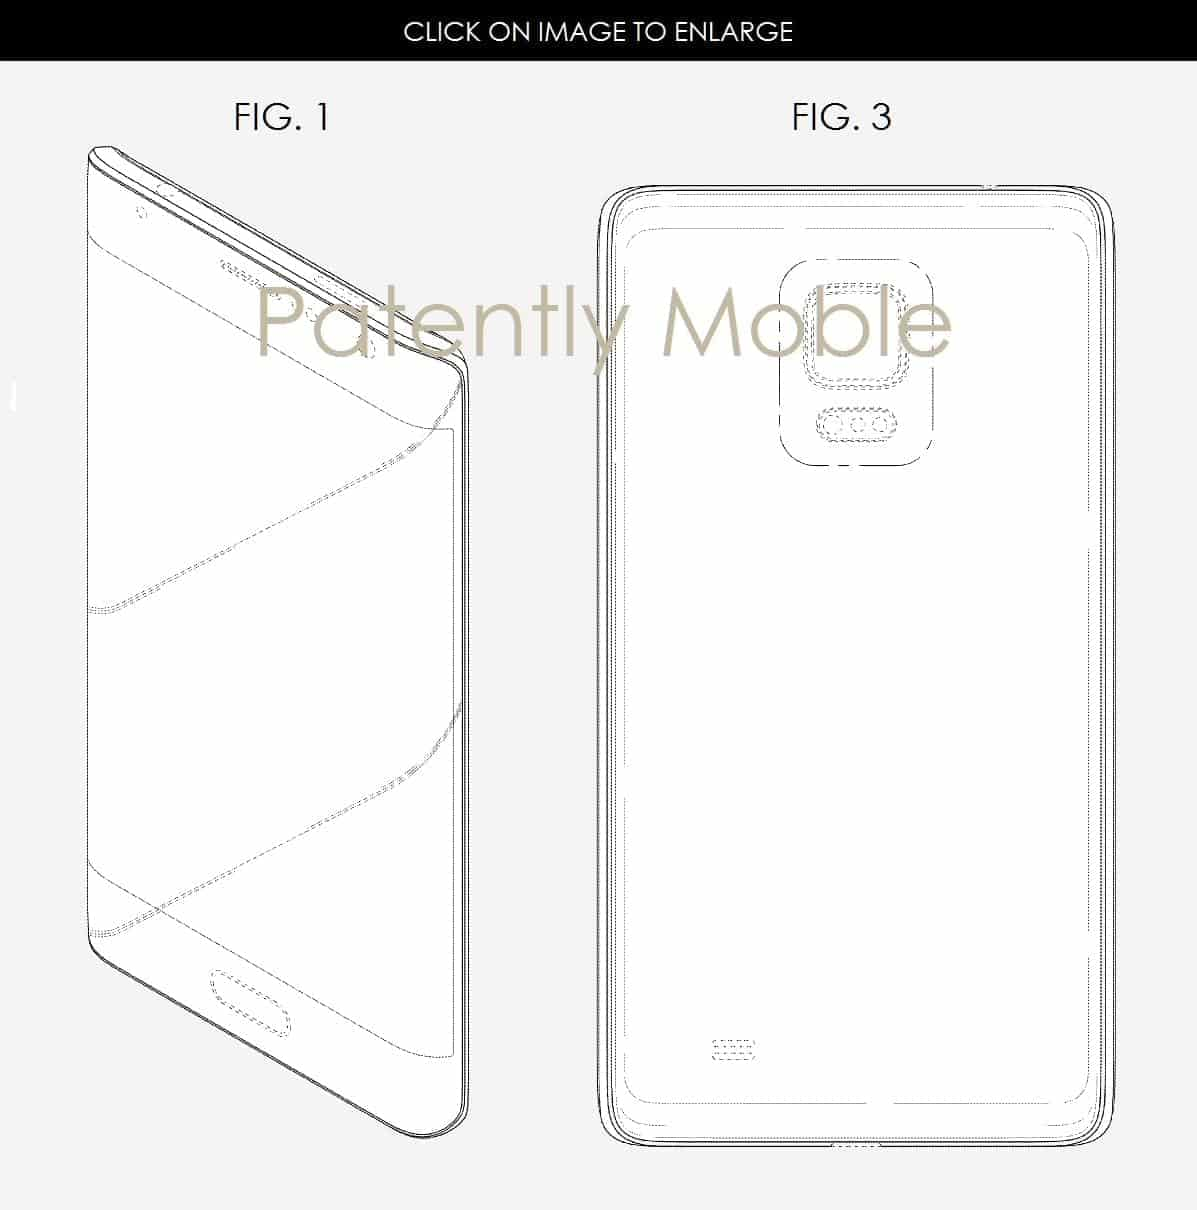 Samsung Foldable Display Patent 2